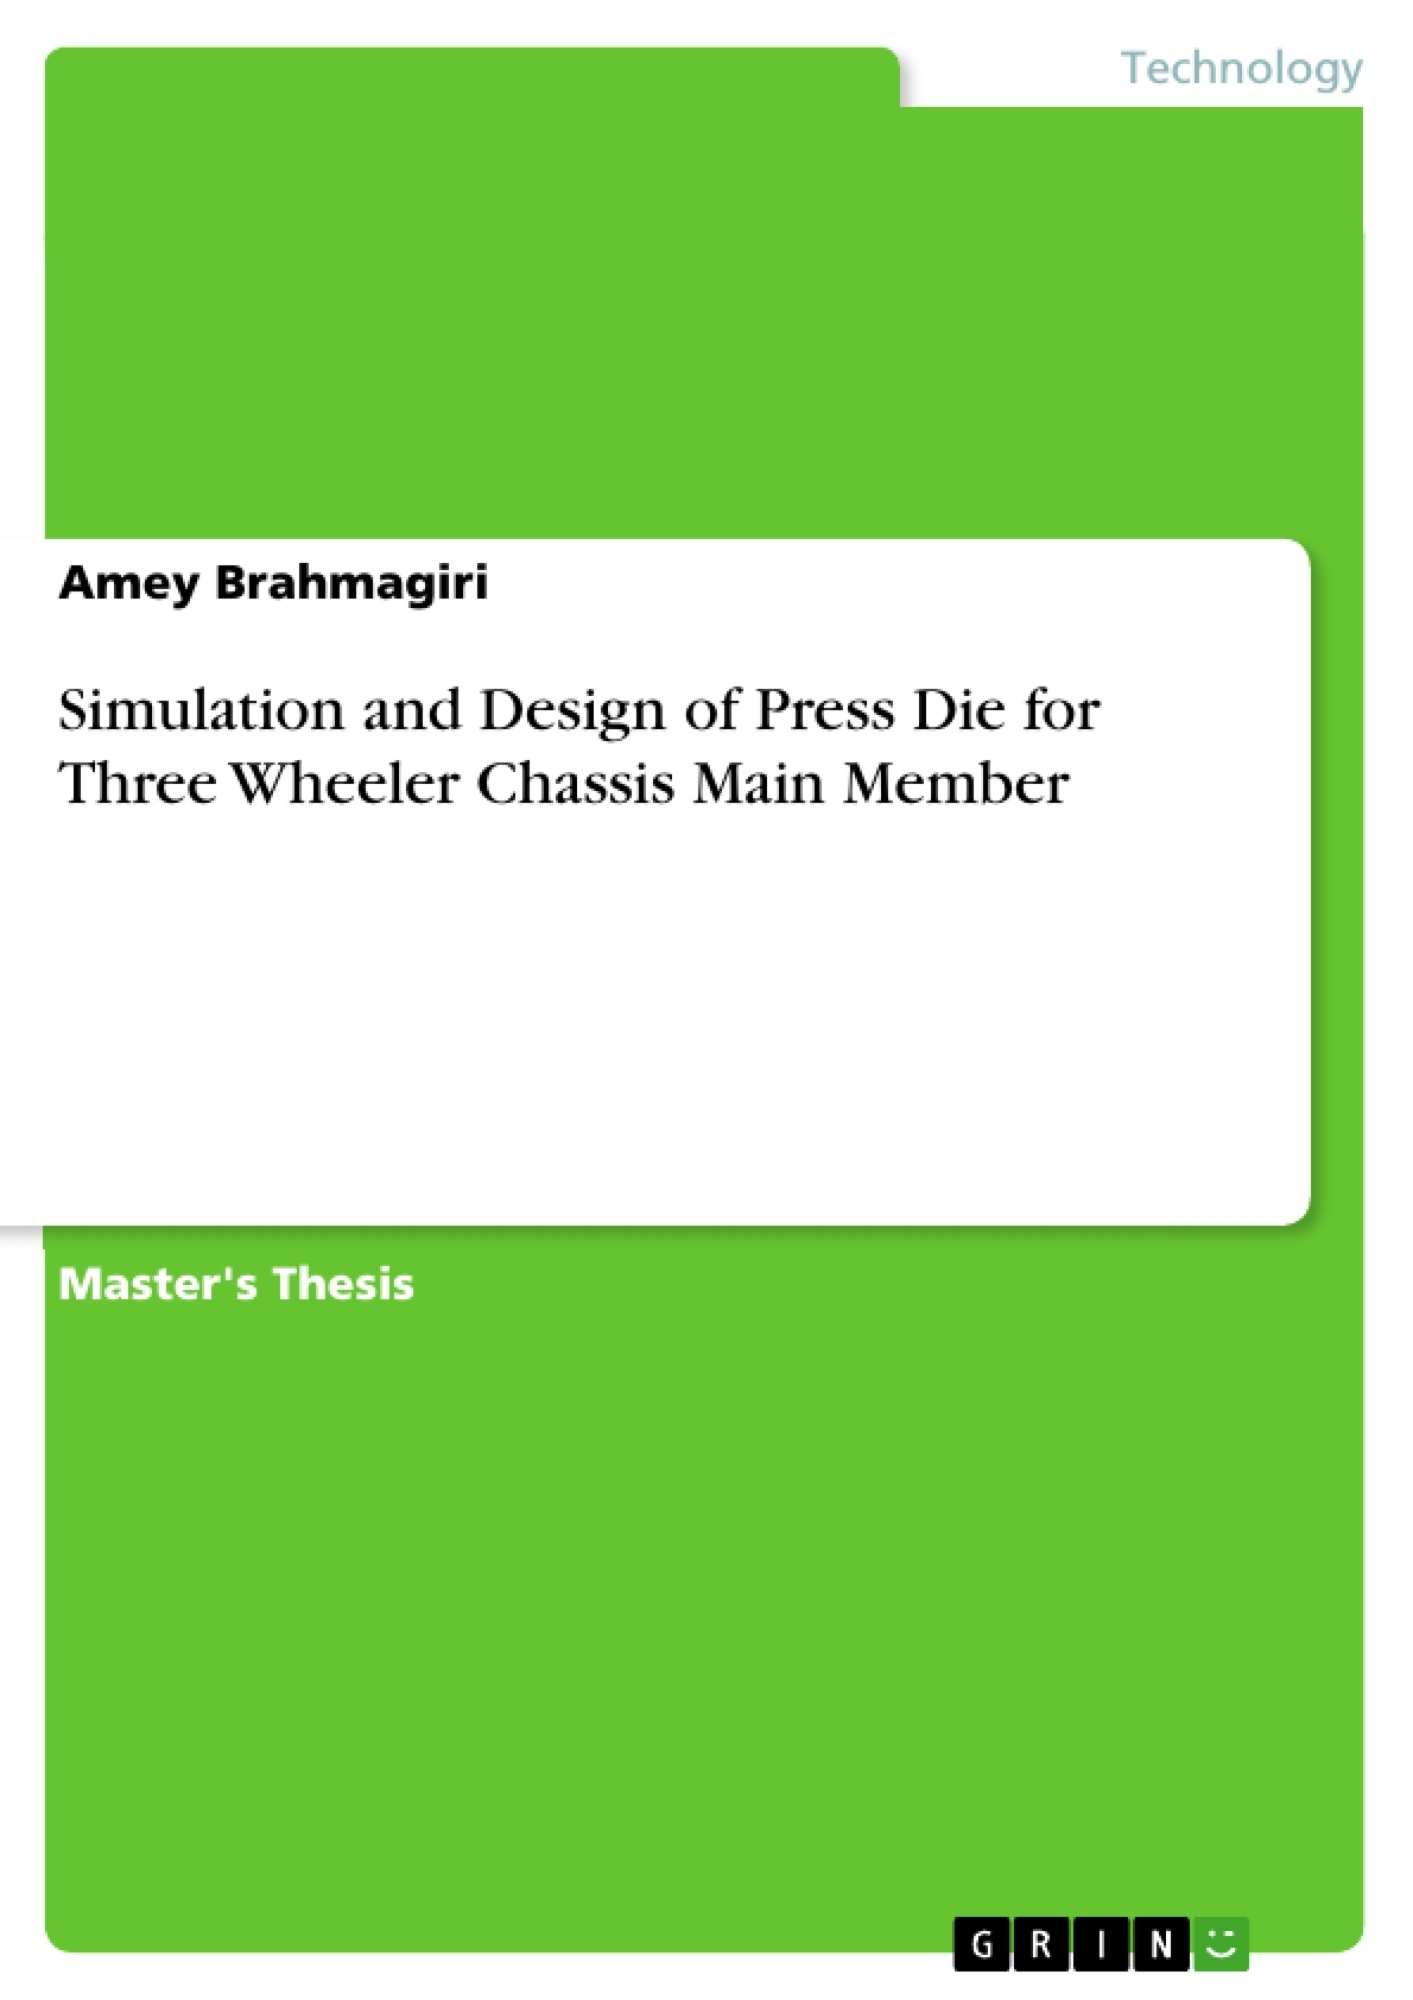 Title: Simulation and Design of Press Die for Three Wheeler Chassis Main Member